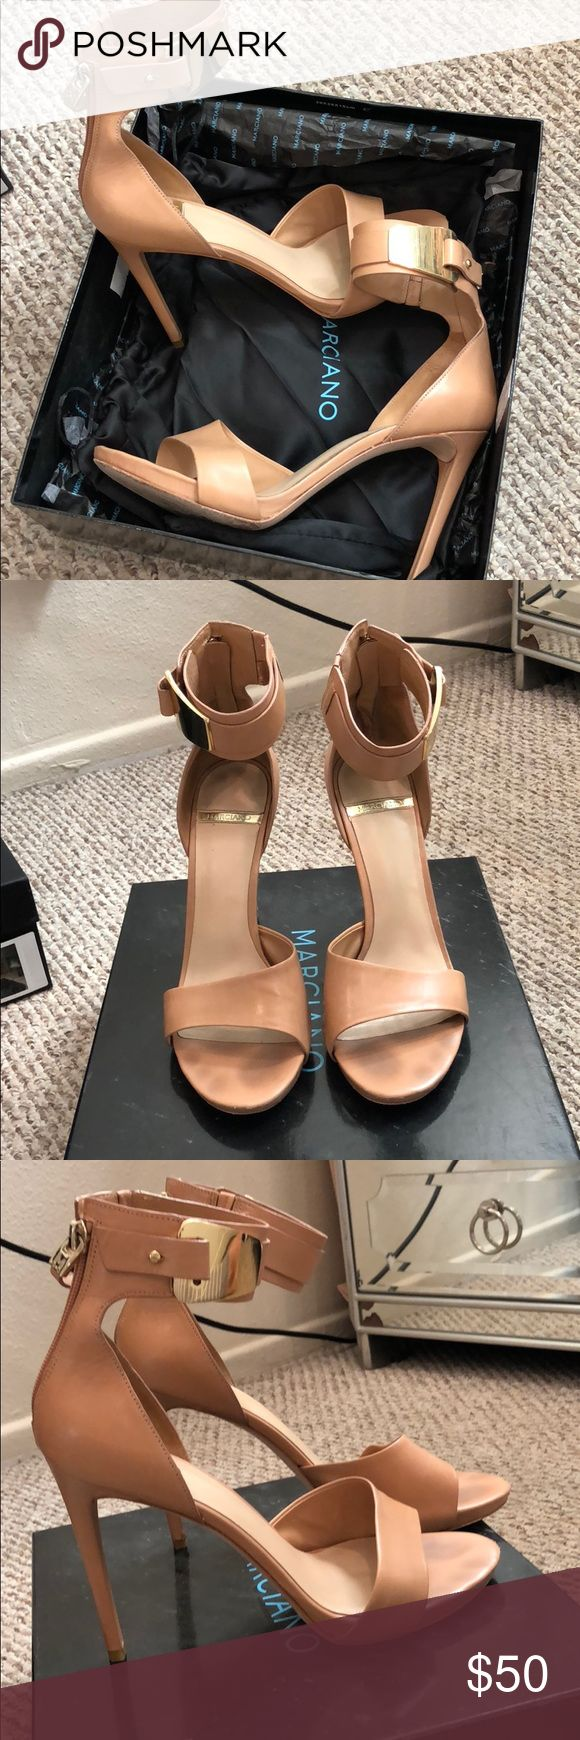 Marciano Genuine Leather heel with metal detail Genuine leather. Nude with gold buckle detail. Zip up back. Super comfy. Original box and dust bag included. NO TRADES. Marciano Shoes Heels